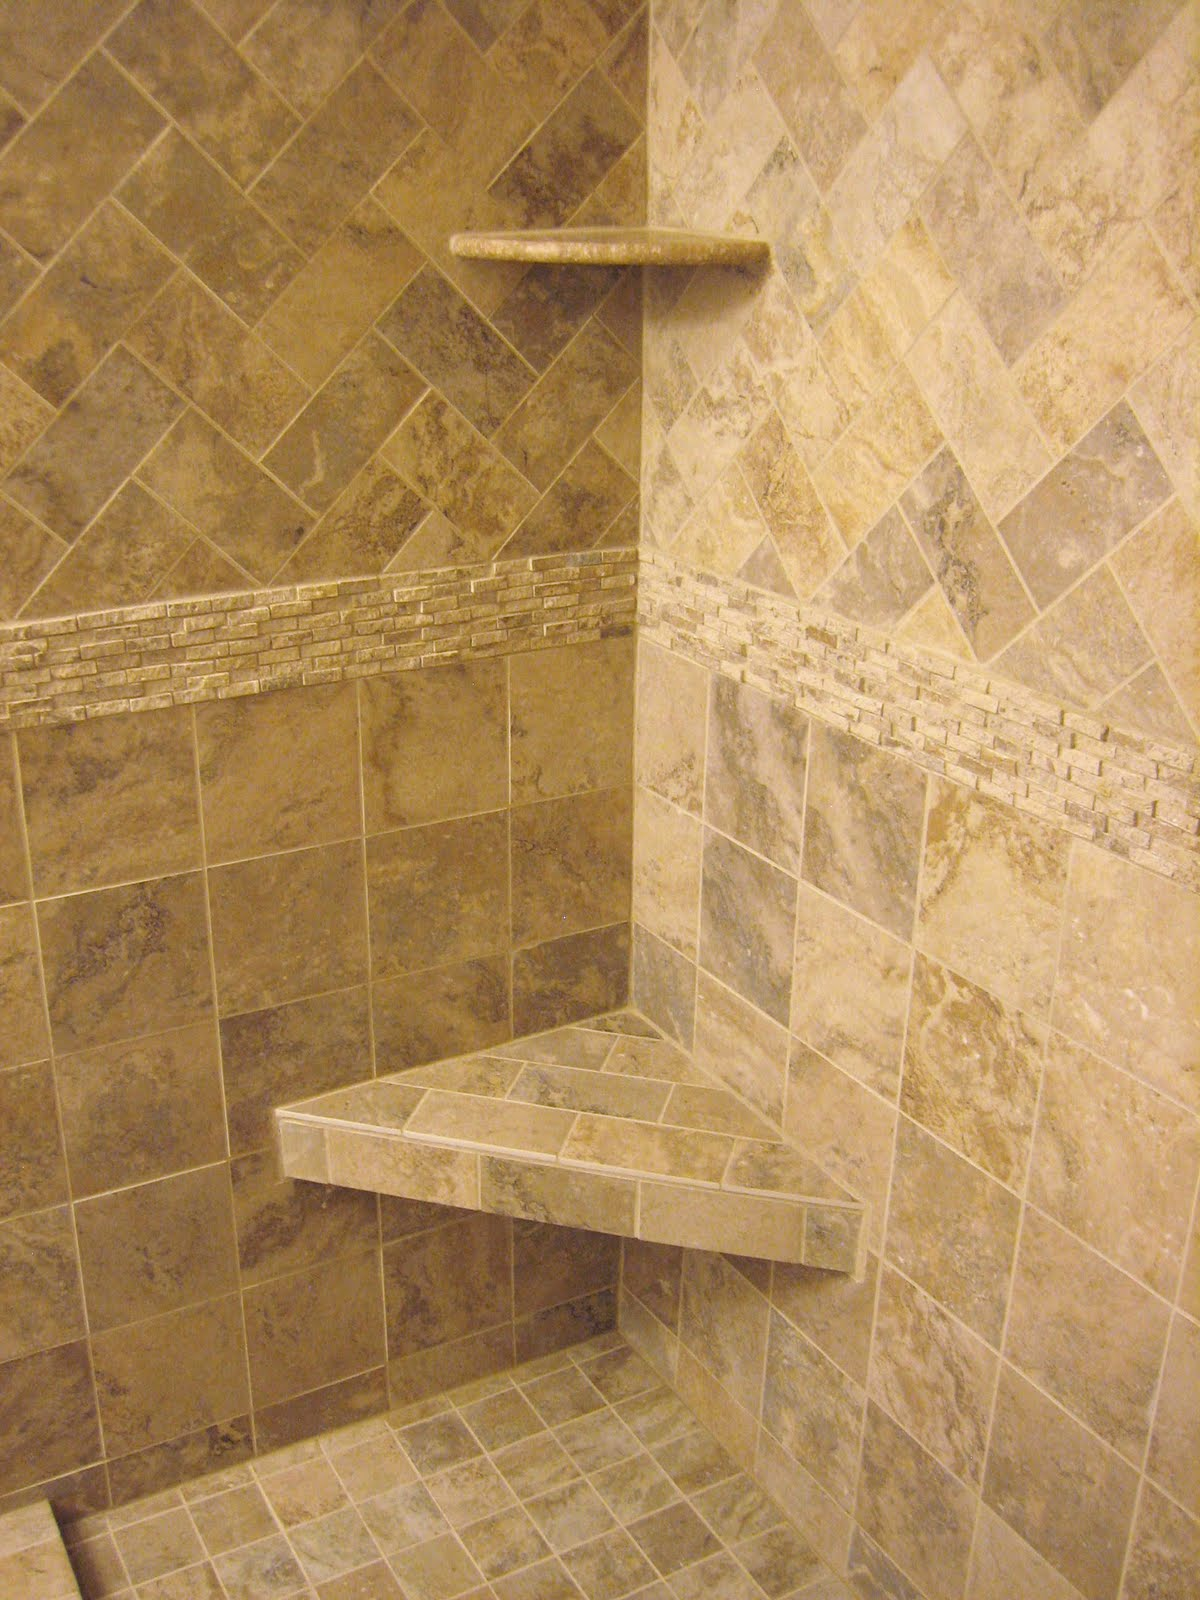 H winter showroom blog june 2010 for Bathroom tile designs ideas